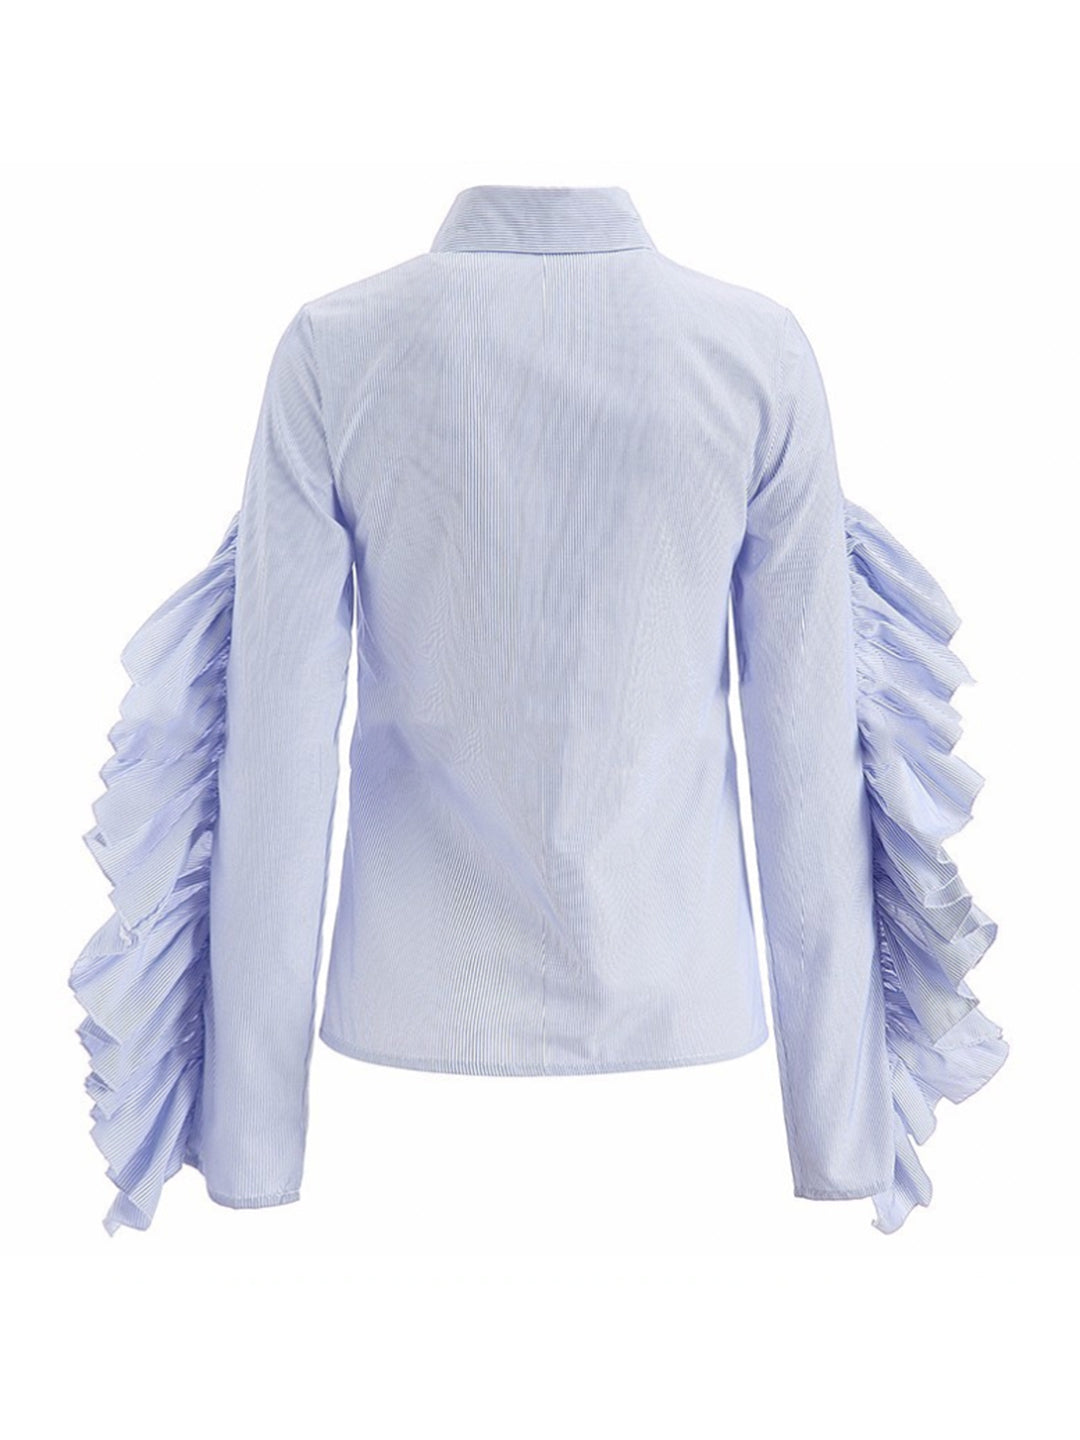 Nicole Ruffled Sleeve Shirt